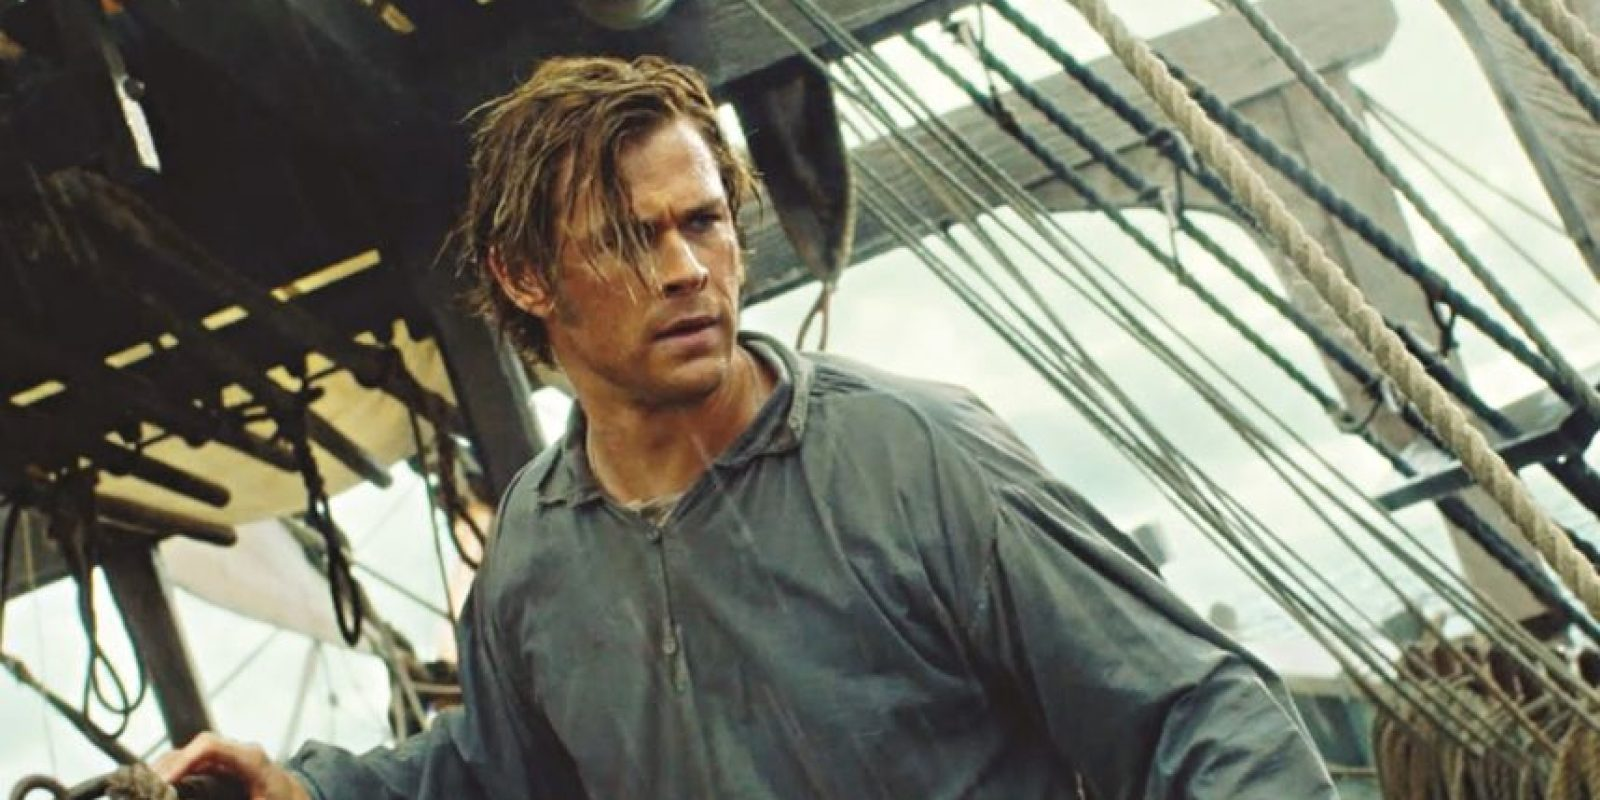 La película basada en la historia real en la que se basó Herman Melville paraescribir Moby Dick y en el best seller de Nathaniel Philbrick, In the Heart of the Sea. Foto: Warner Bros